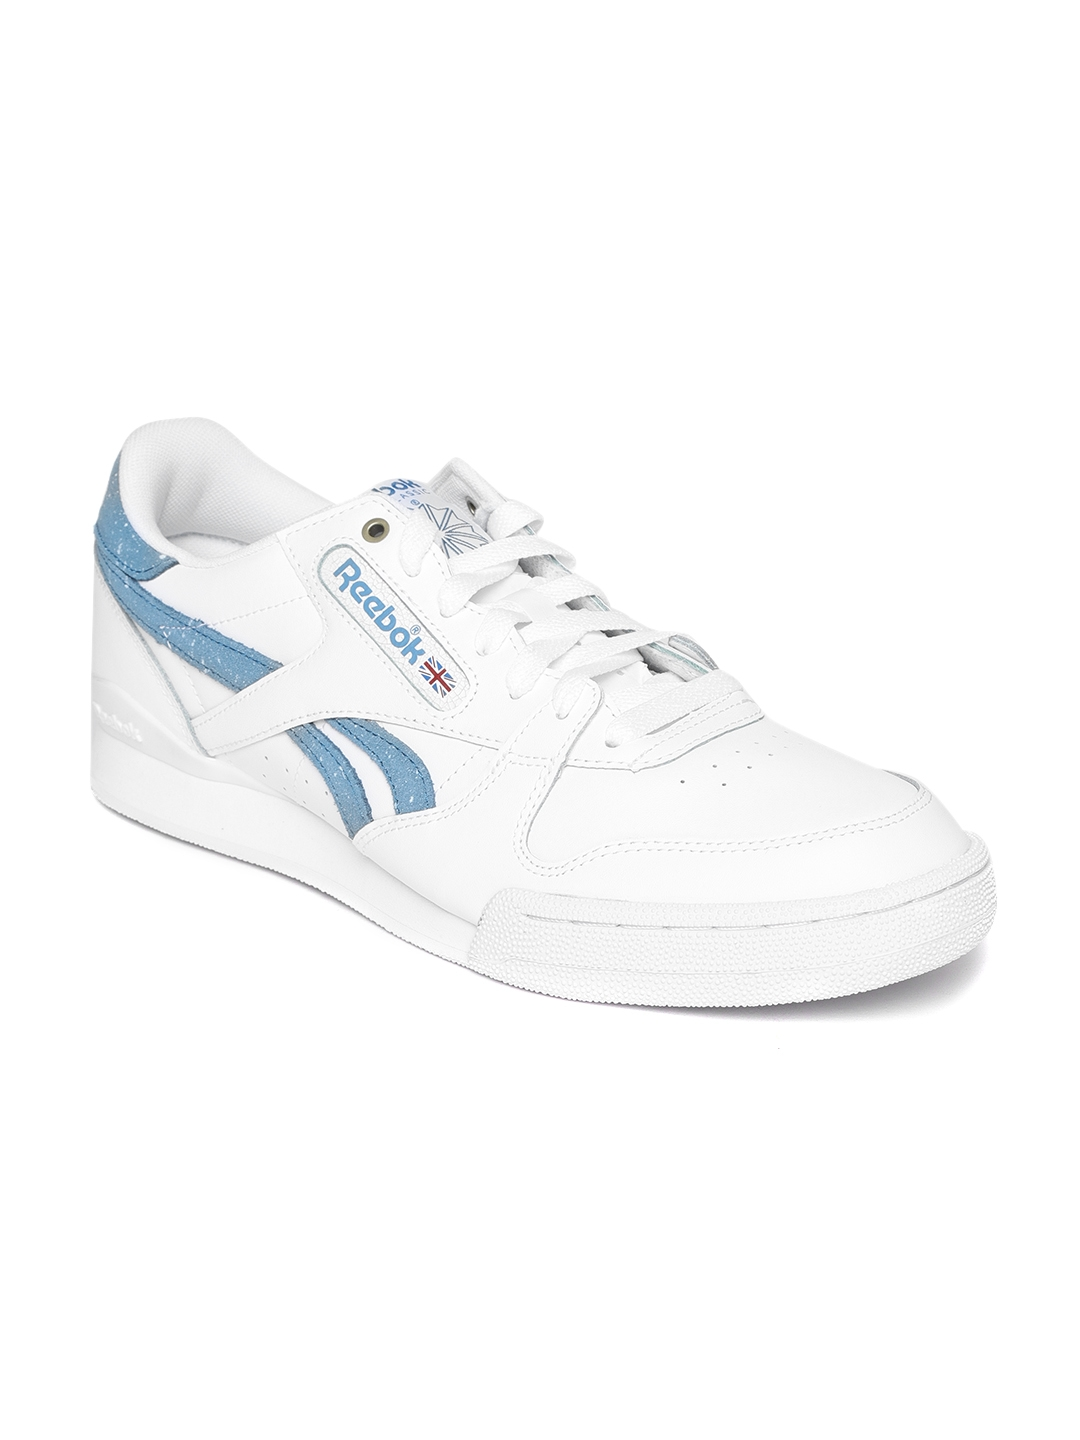 489d45fdedc Buy Reebok Classic Men White PHASE 1 PRO MU Leather Sneakers ...